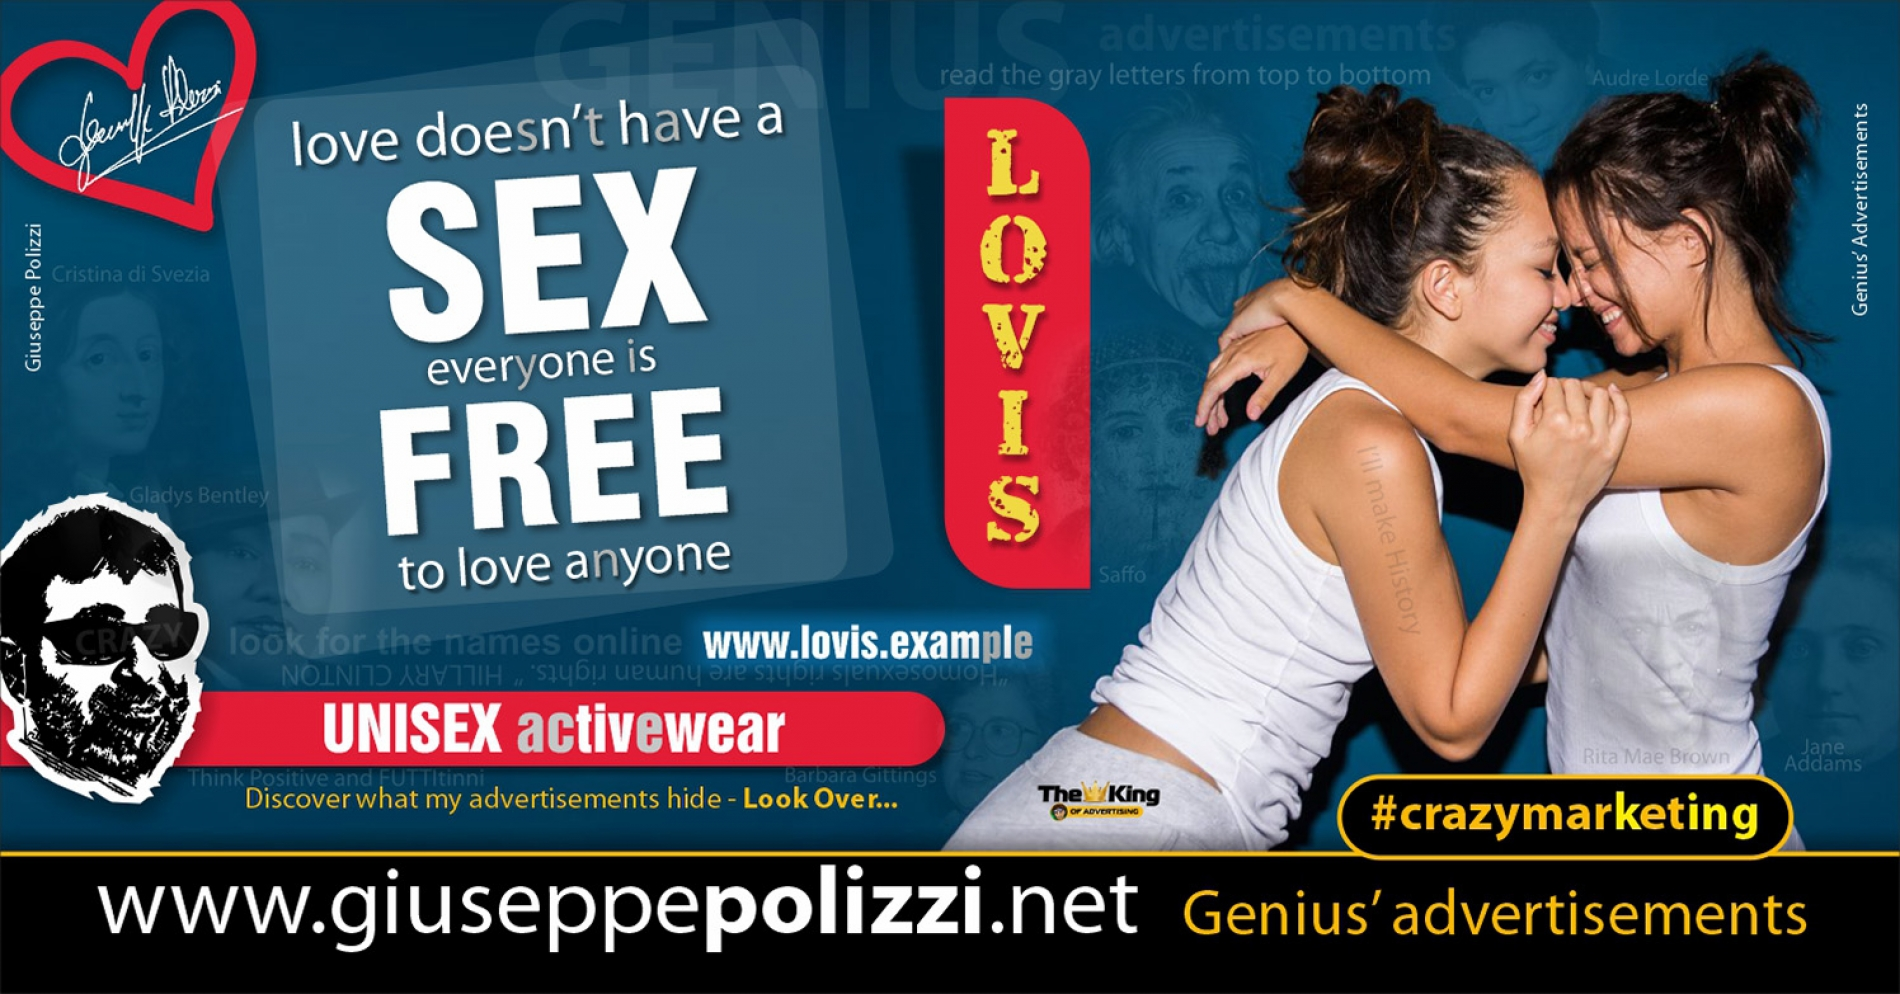 giuseppe polizzi crazymarketing Sex Free advertisements